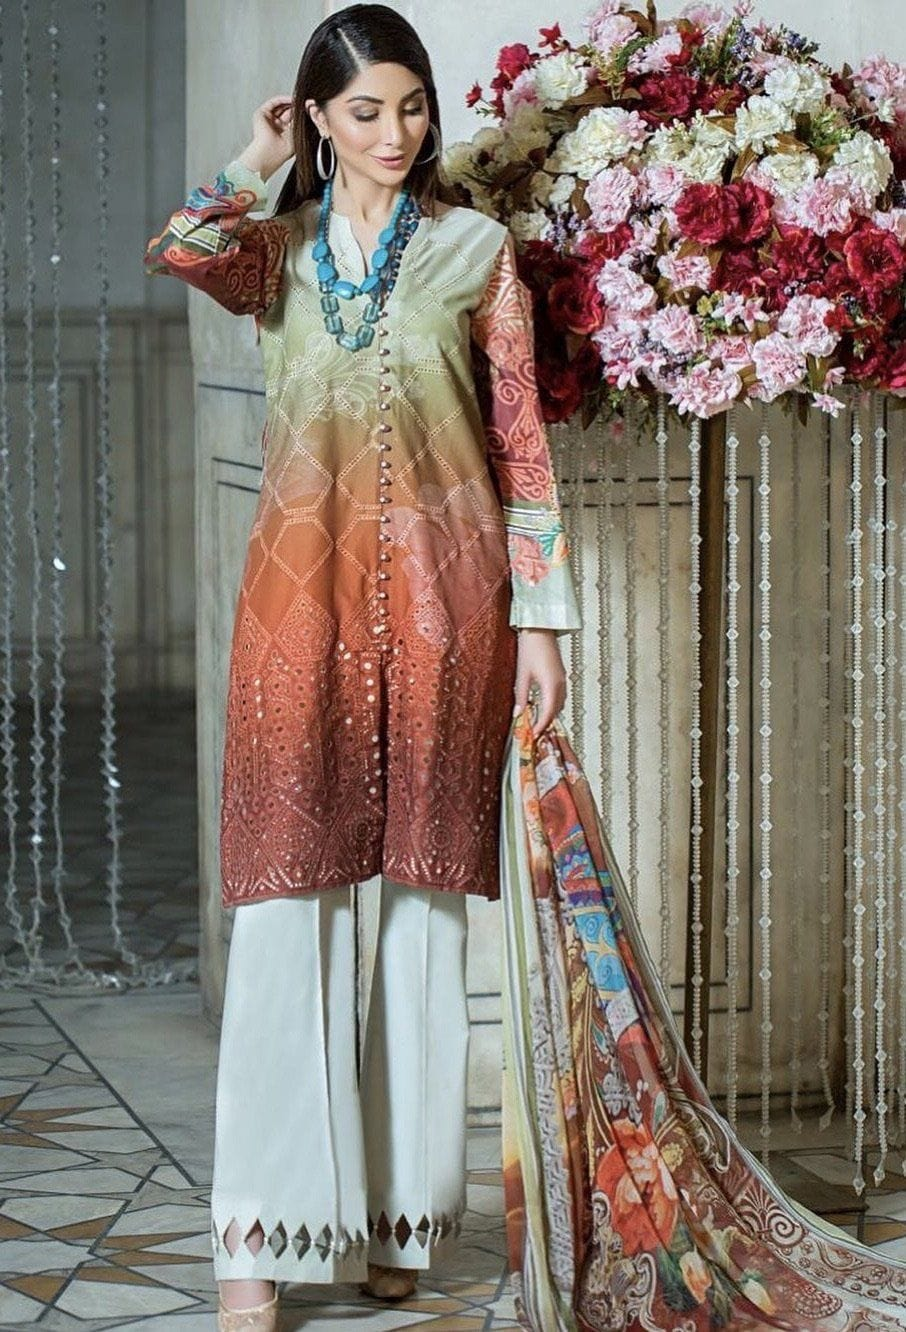 SRN brown-Embroided 3pc lawn chicken kari dress with printed chiffon dupatta. - gracestore.pk